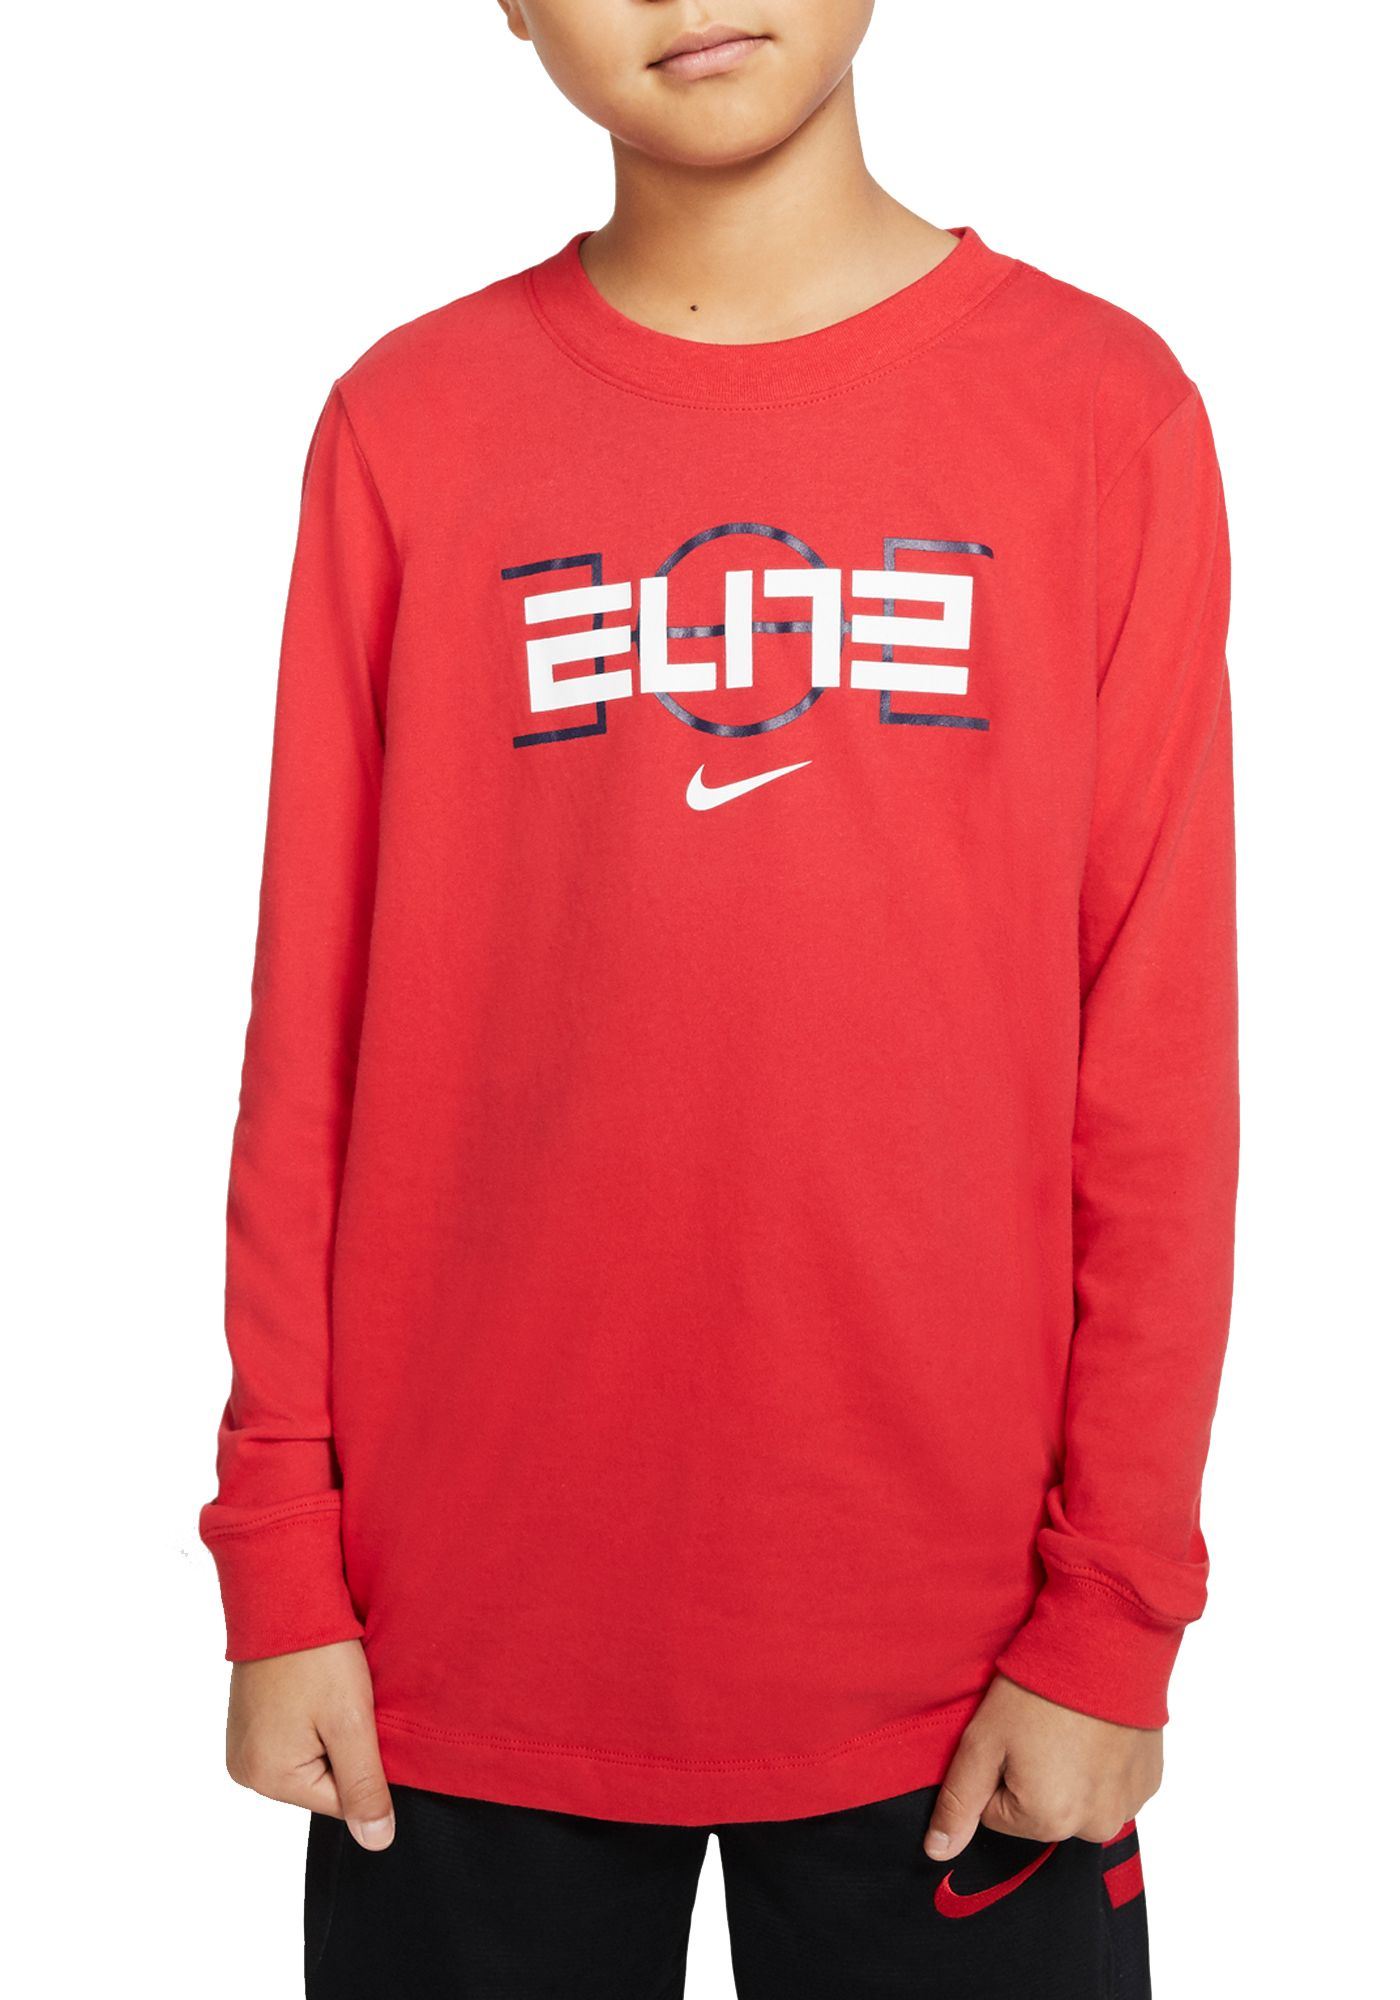 Nike Boys' Dri-FIT Elite Long Sleeve Shirt